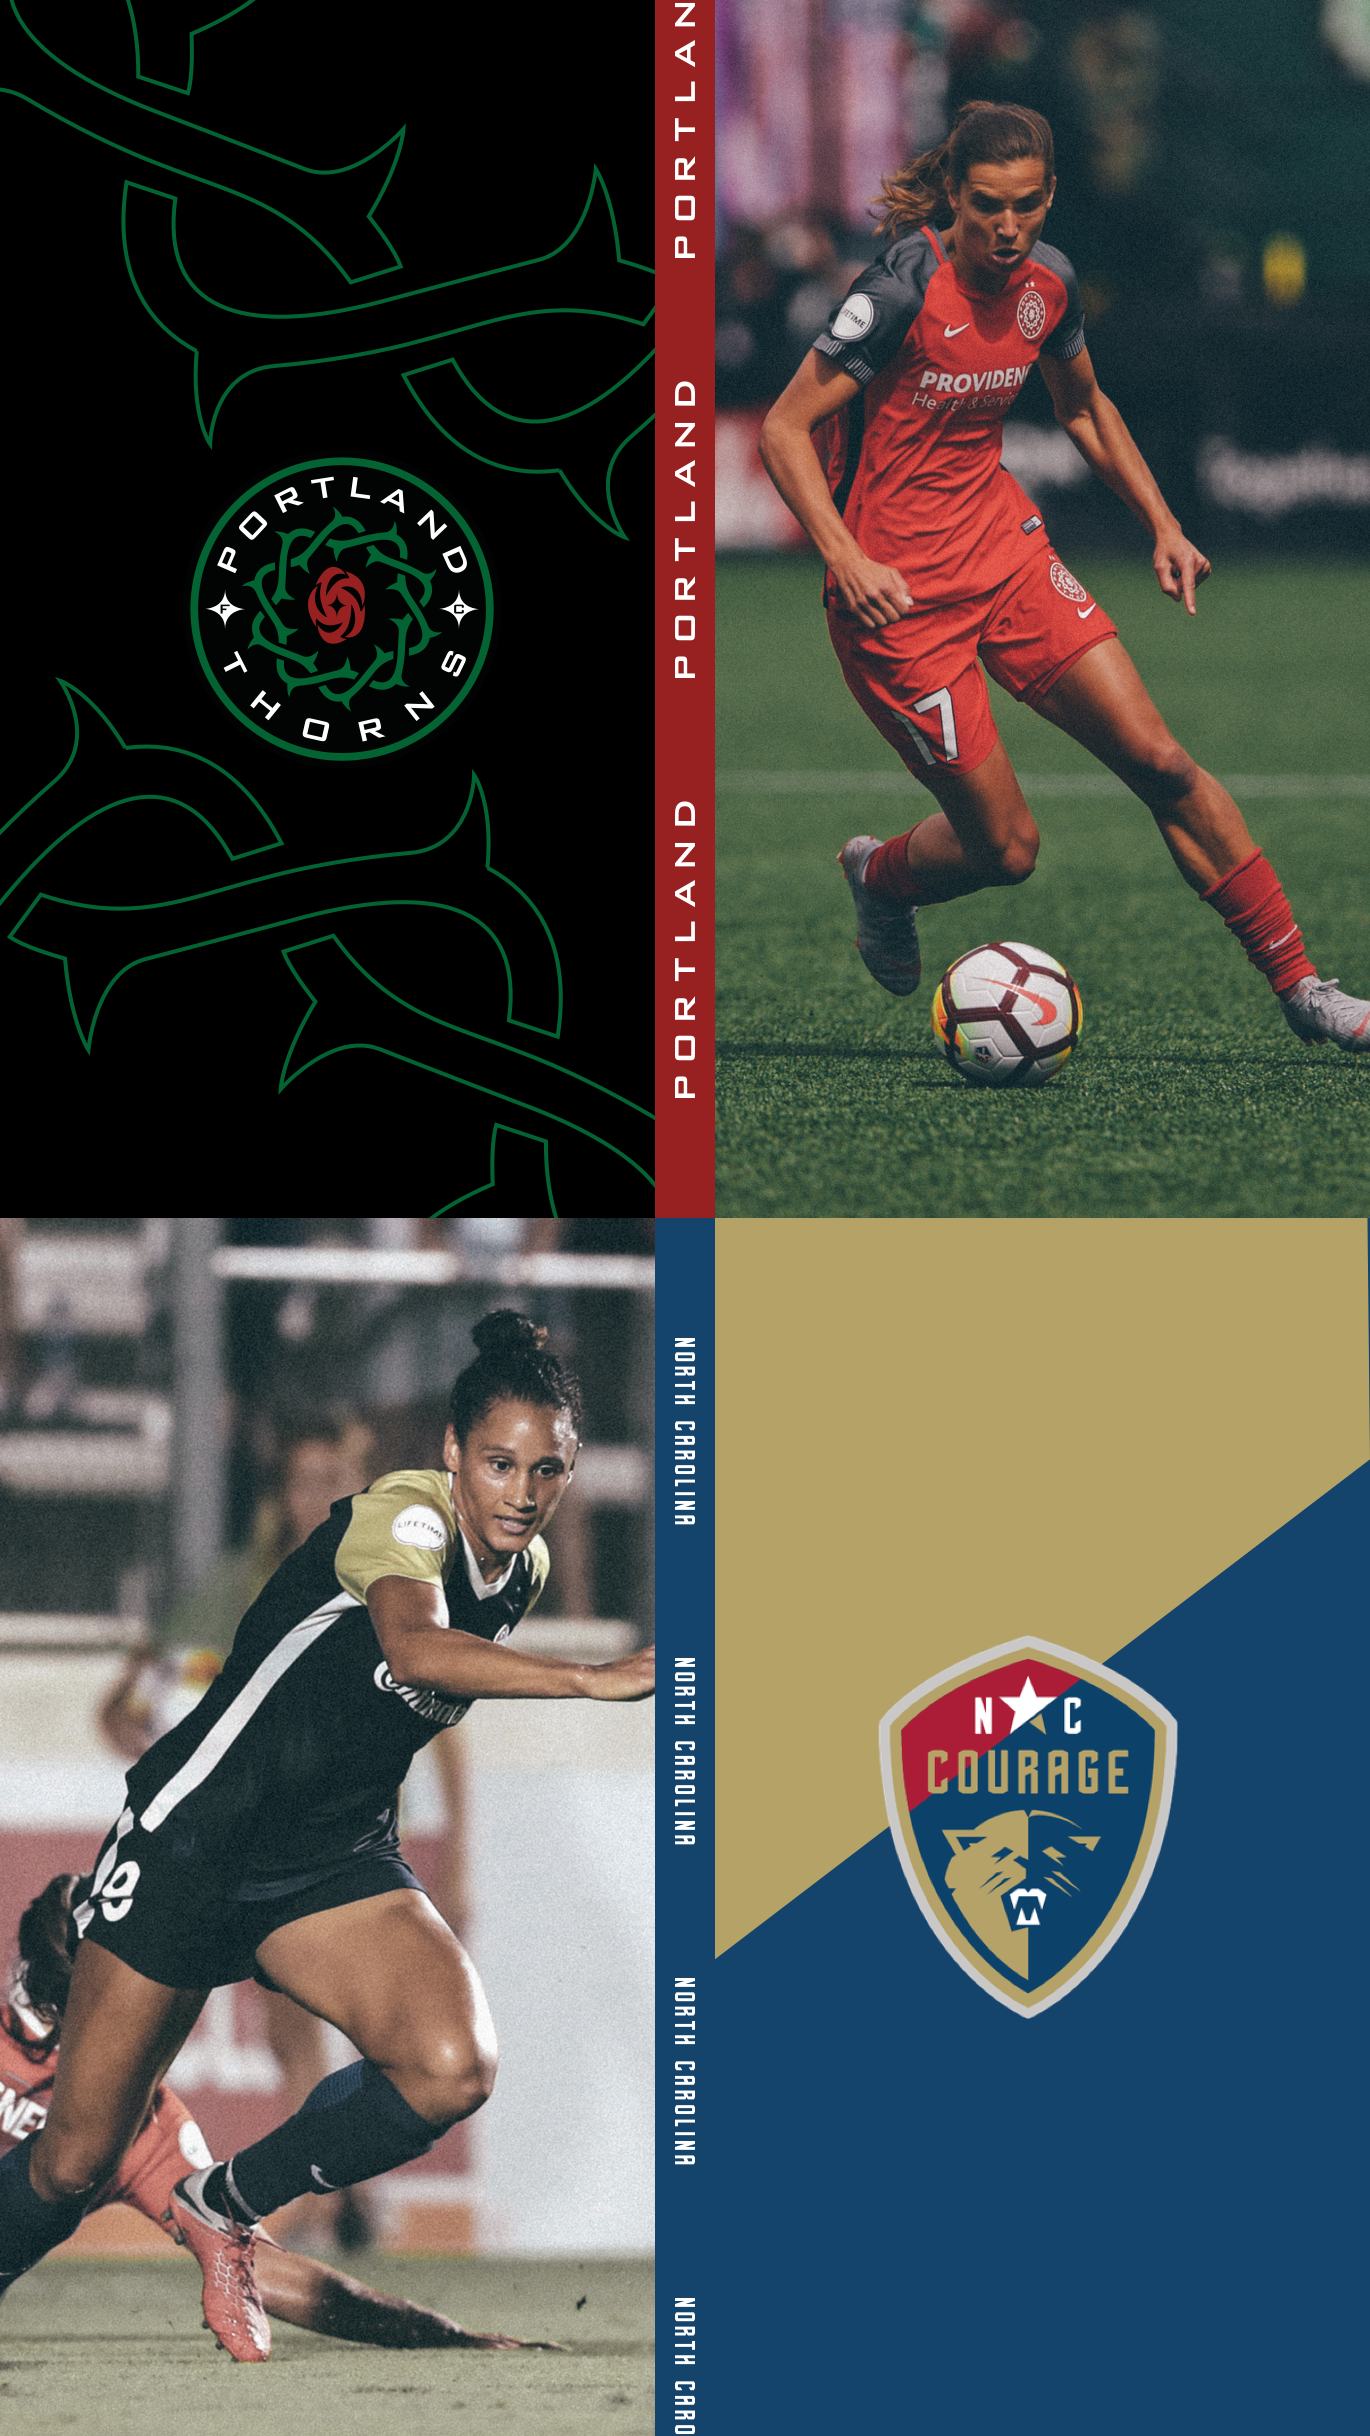 NIKE-NWSL-IG-STORY-15.png